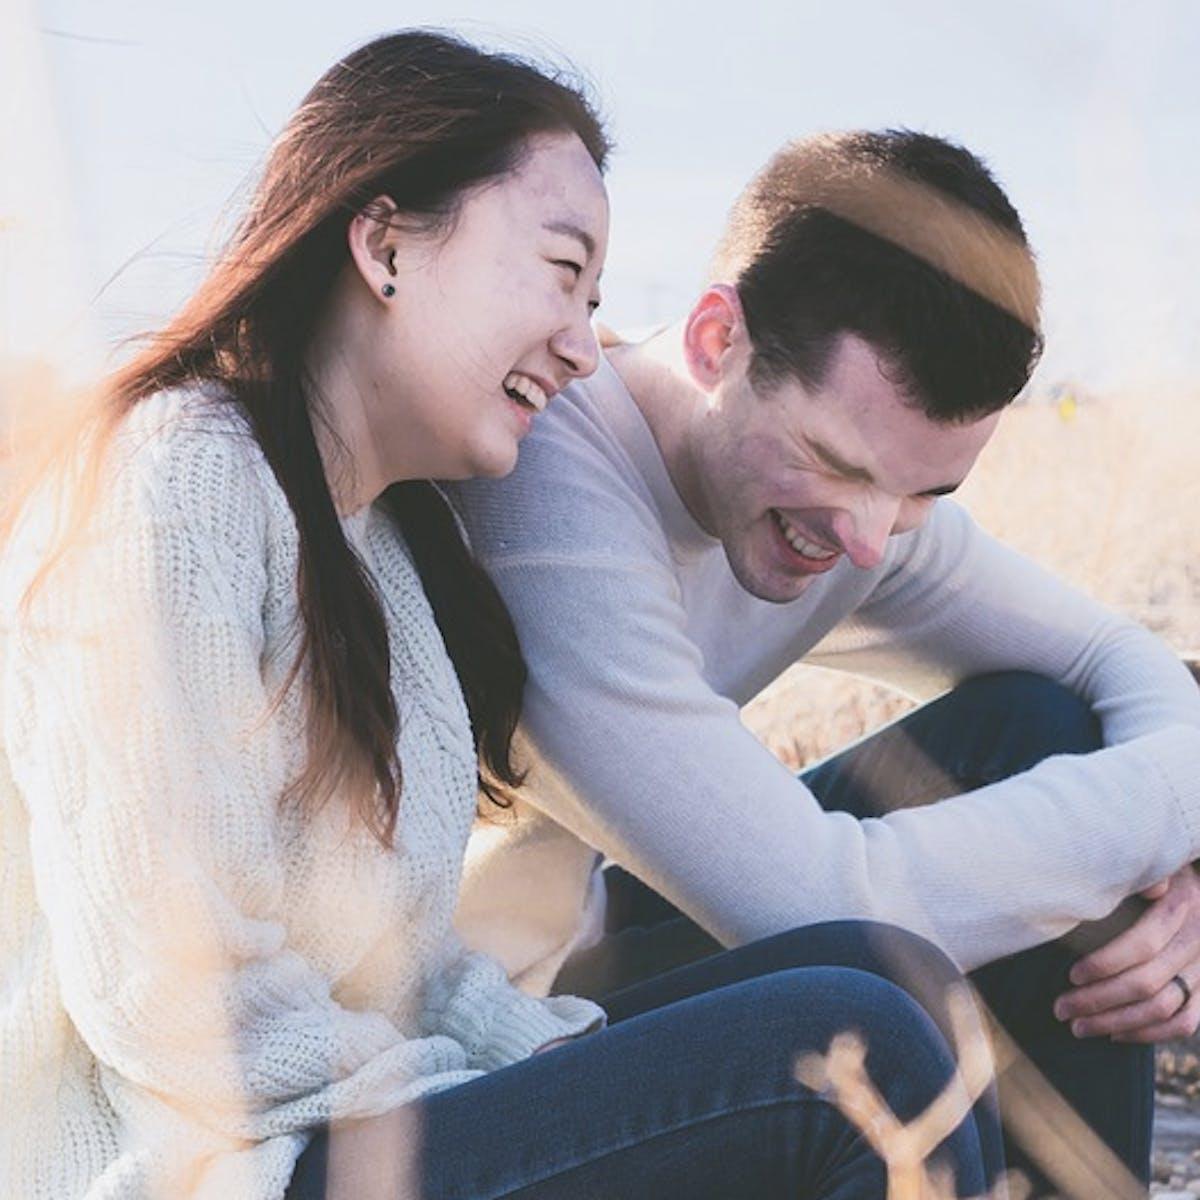 matchmaking service st louis